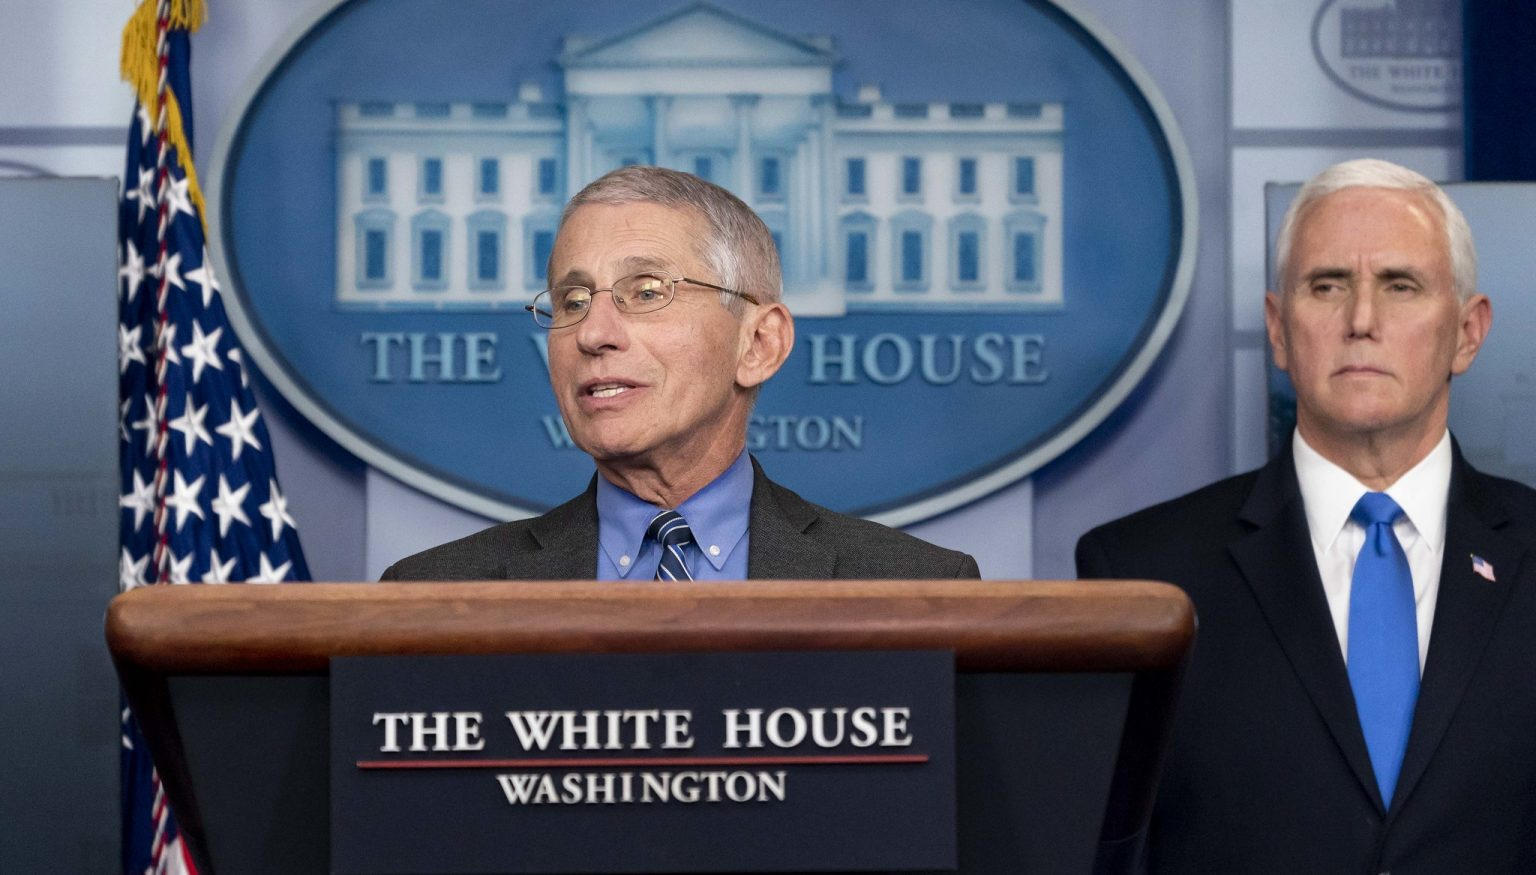 Dr. Anthony Fauci at a White House Coronavirus Task Force briefing, April 6, 2020, illustrating piece on COVID lockdowns (D. Myles Cullen/Official White House Photo) spectator.org